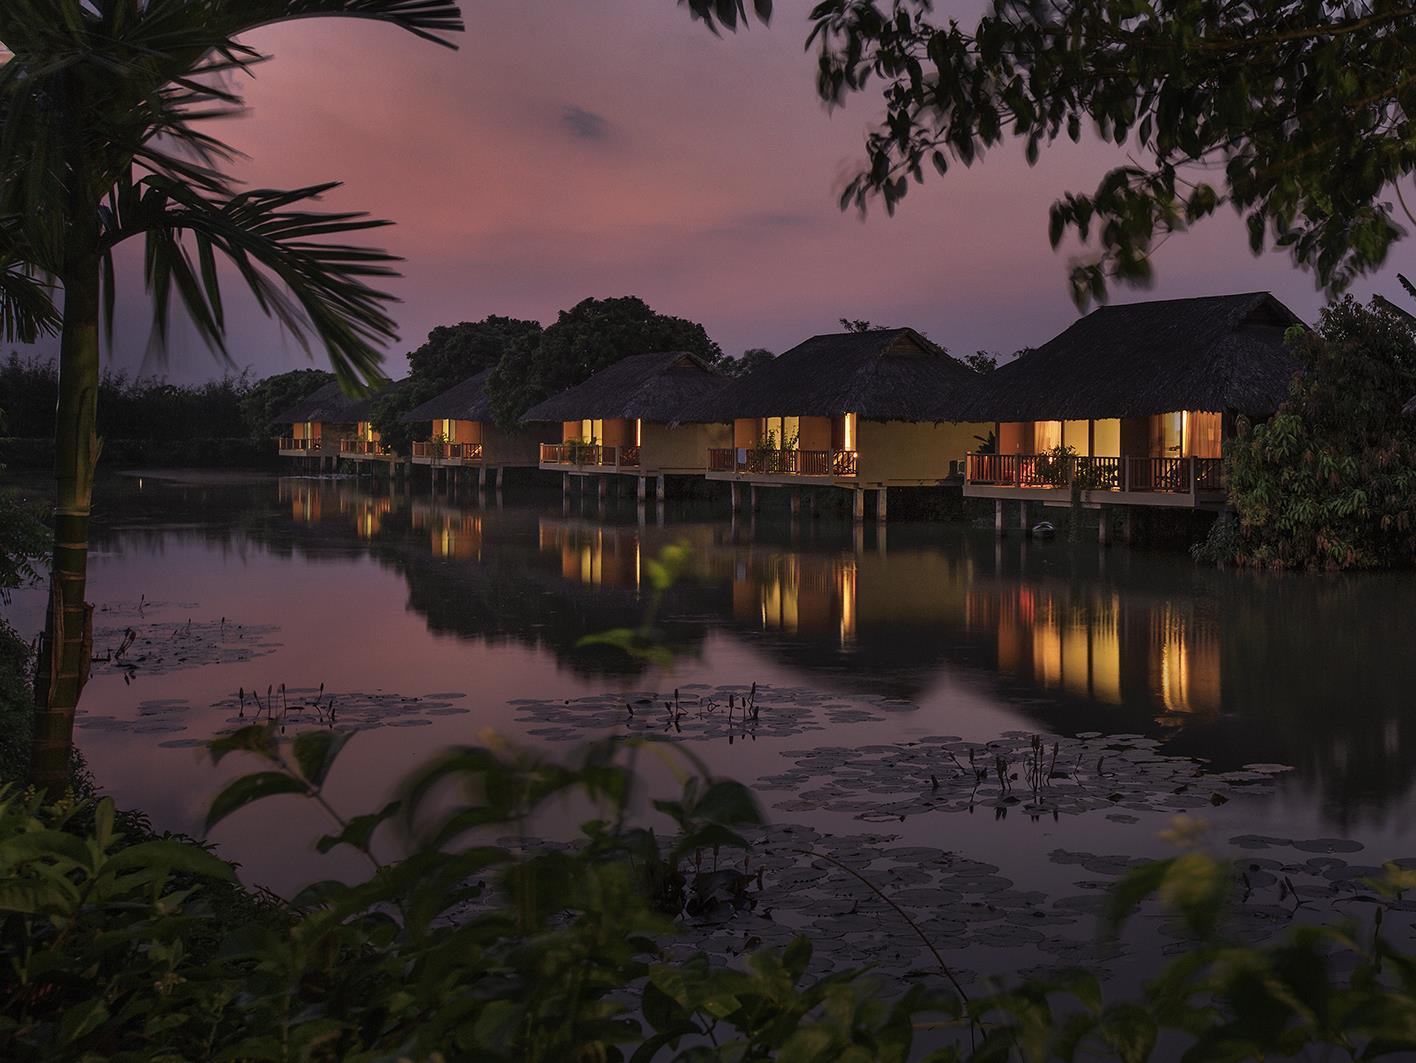 Mekong Riverside Boutique Resort & Spa Cai Be (Tien Giang)